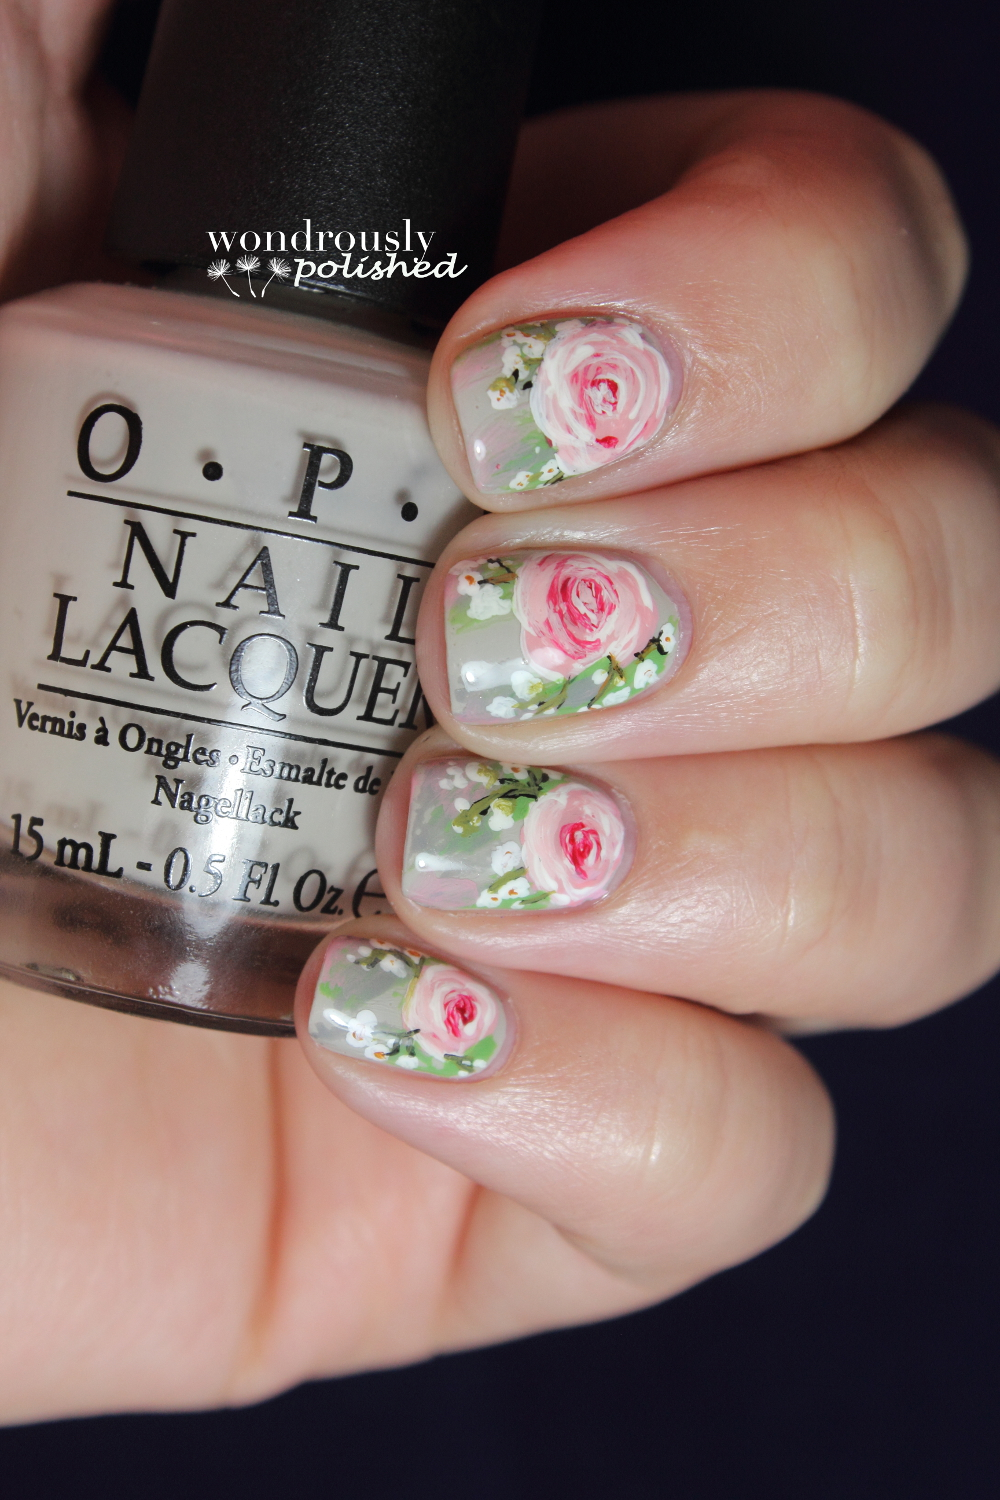 Wondrously Polished February Nail Art Challenge: Wondrously Polished: 31 Day Nail Art Challenge